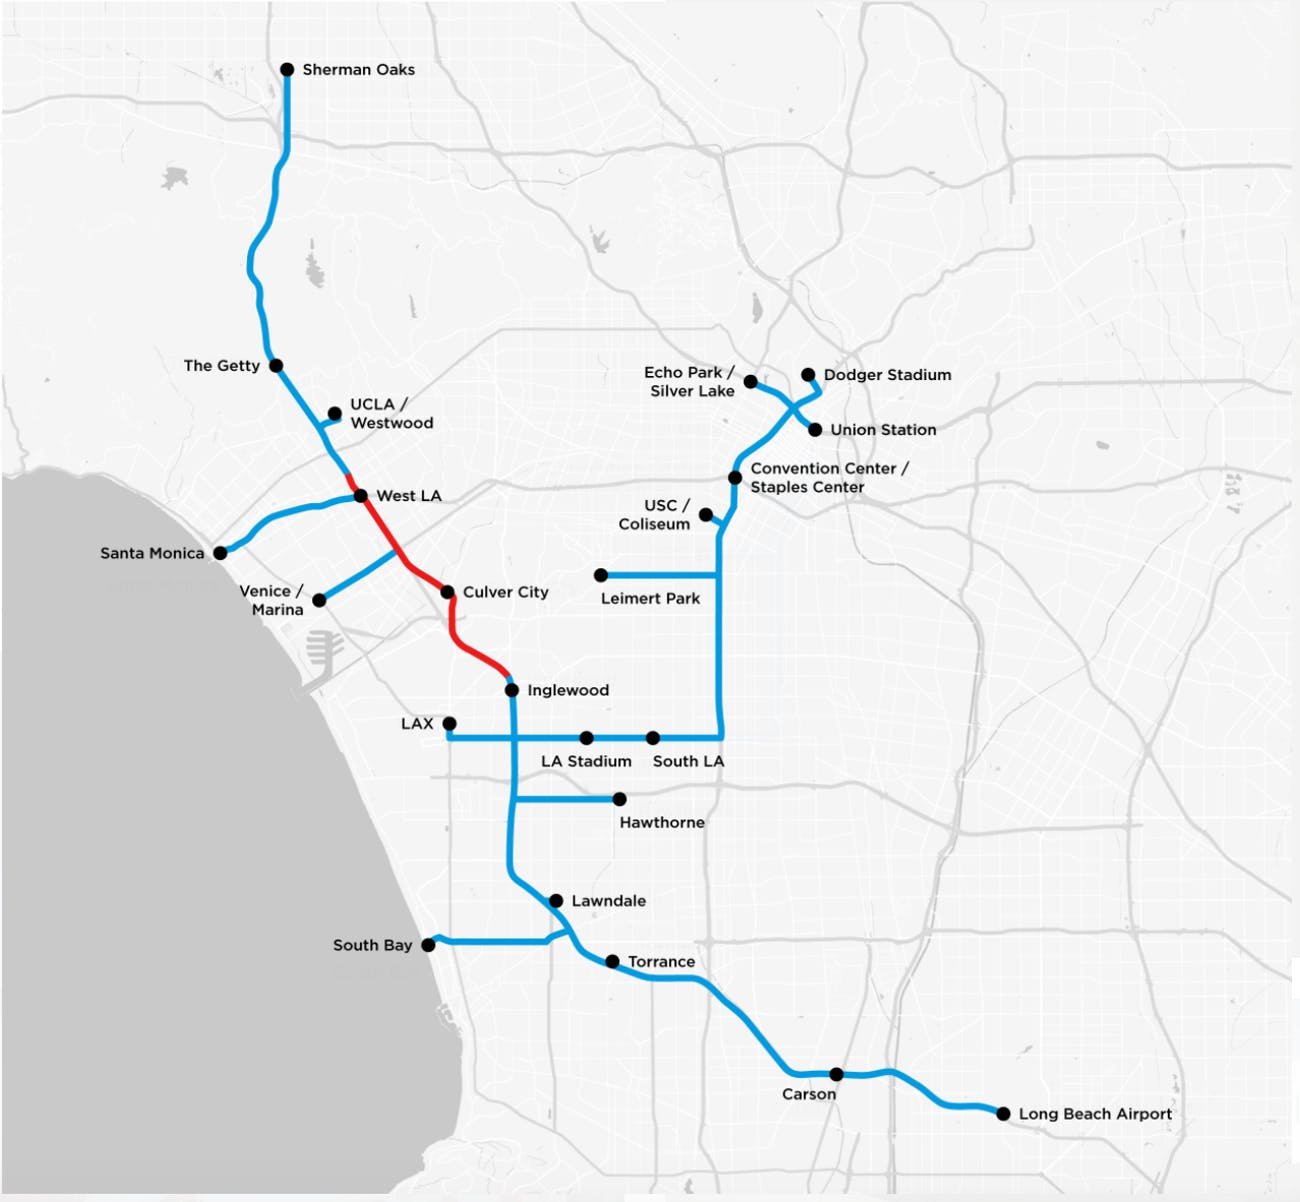 The Boring Company's initial proof-of-concept tunnel is depicted in red, while the blue lines represent how it could be expanded.